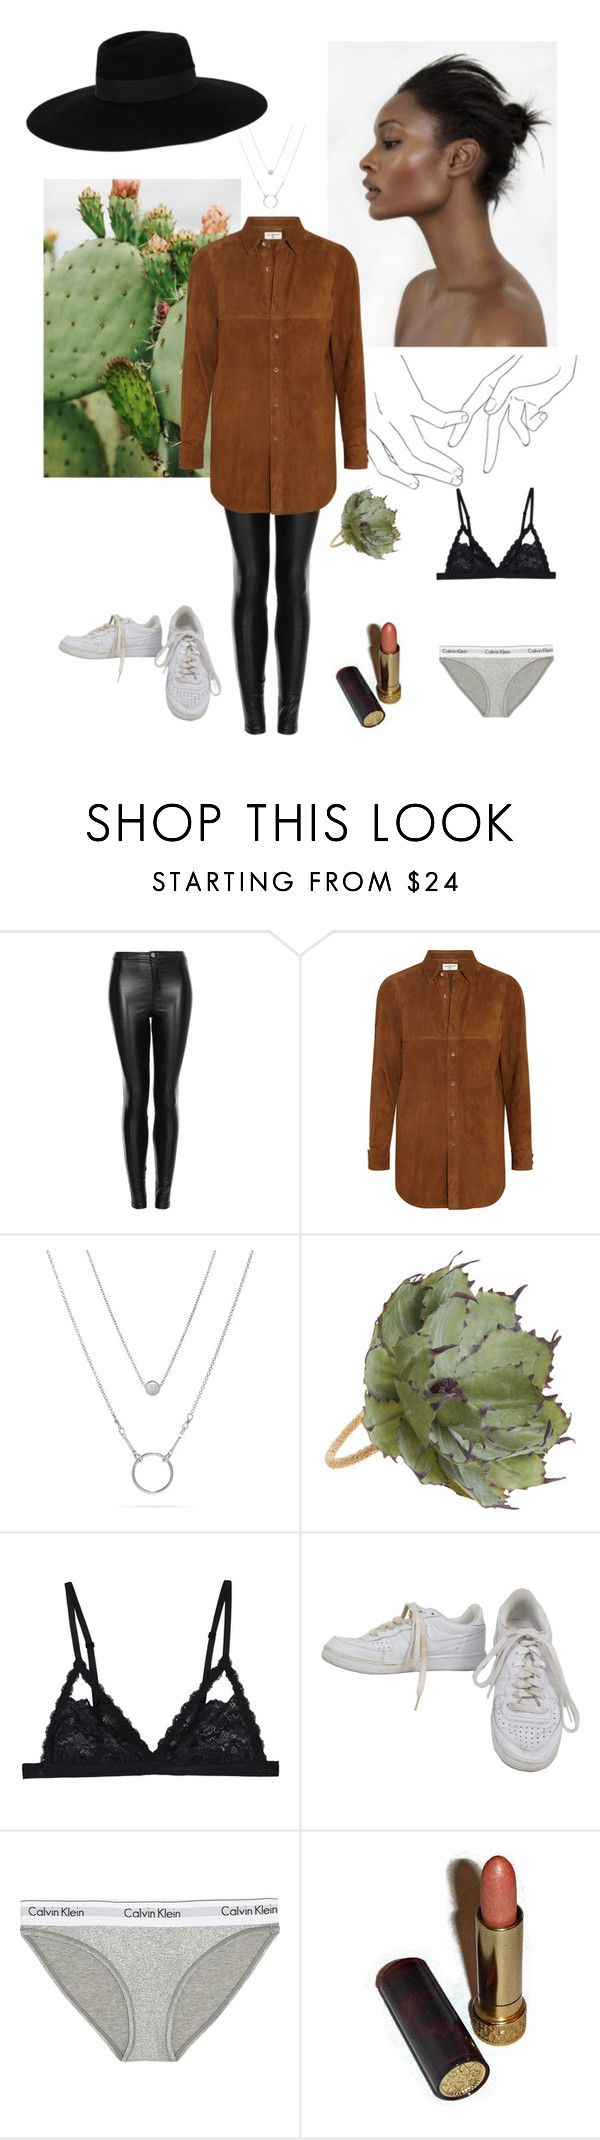 """Polexia #Cactus again"" by lj-k ❤ liked on Polyvore featuring Motel, Yves Saint Laurent, Deborah Rhodes, Cosabella, NIKE, Calvin Klein Underwear, Avon and Maison Michel"